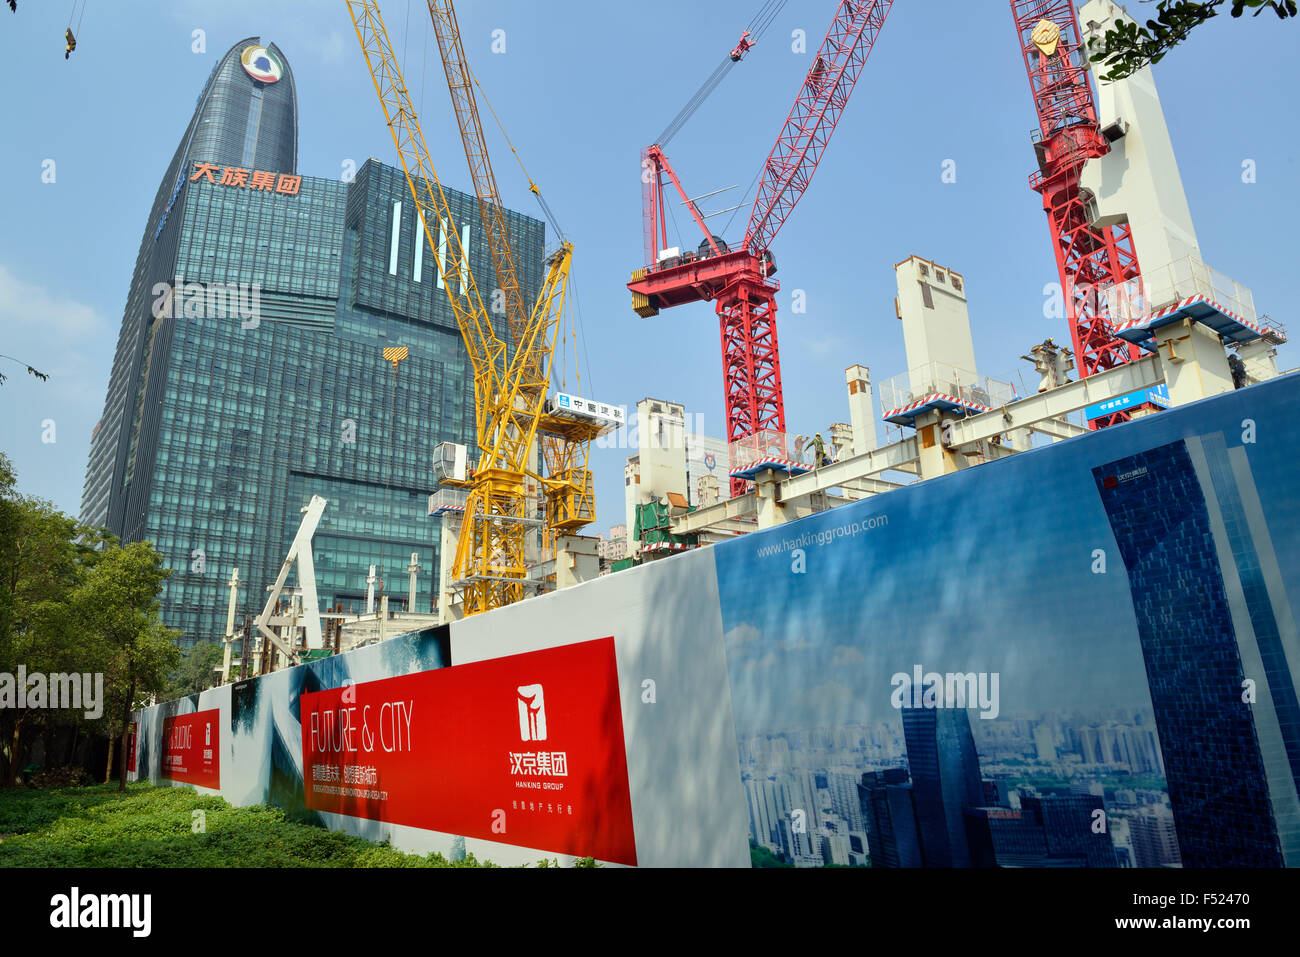 Un chantier de construction au parc high-tech de Futian district, Shenzhen, Chine. Photo Stock